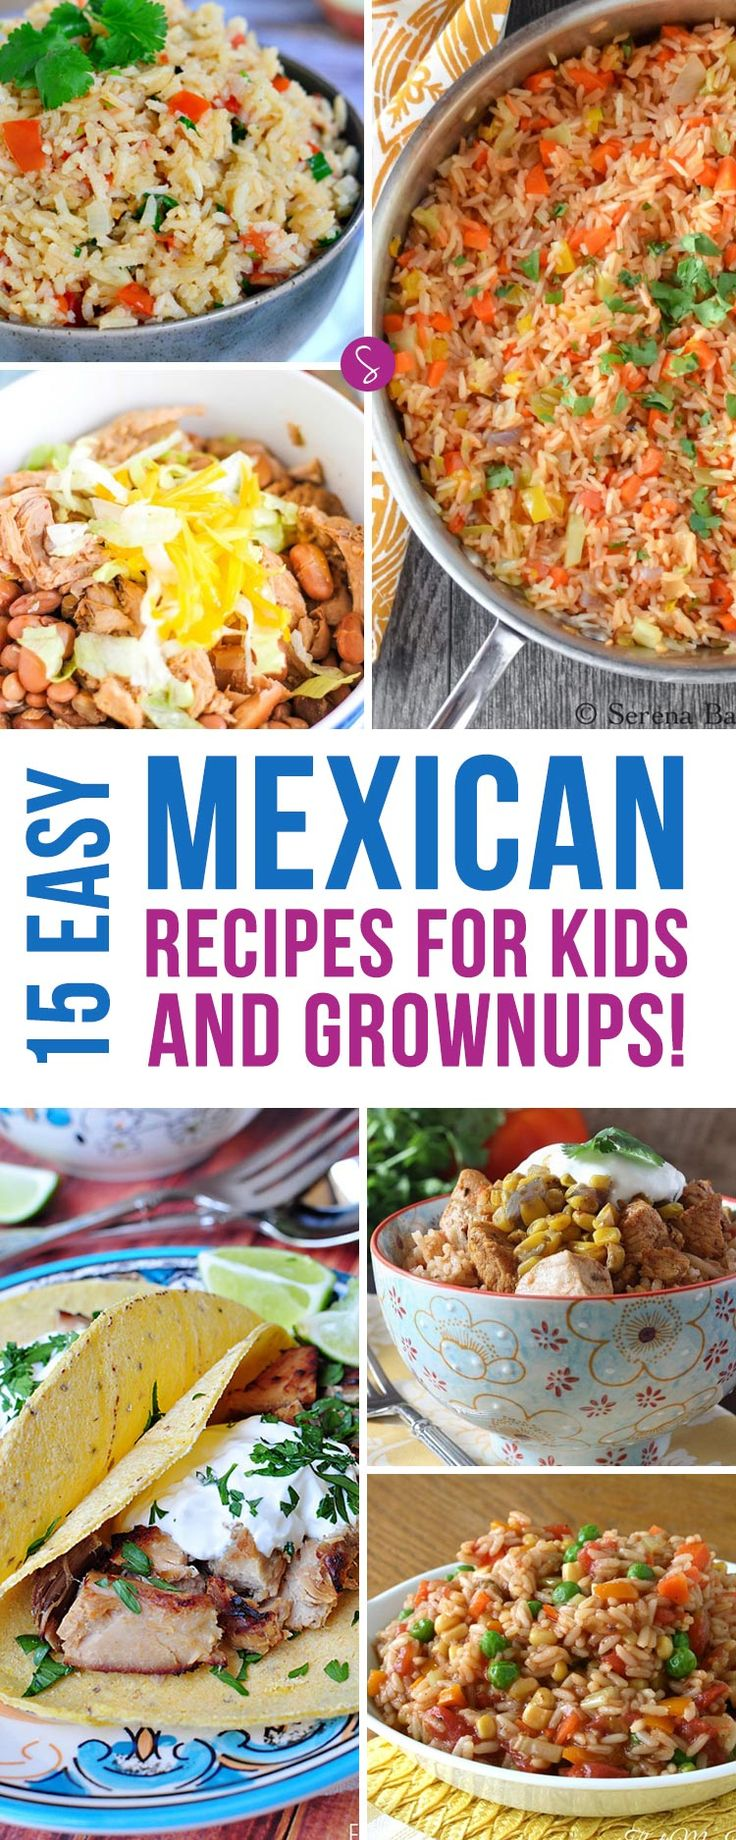 These easy Mexican recipes are perfect for kid friendly family meals because everyone can get stuck in and enjoy the food together.